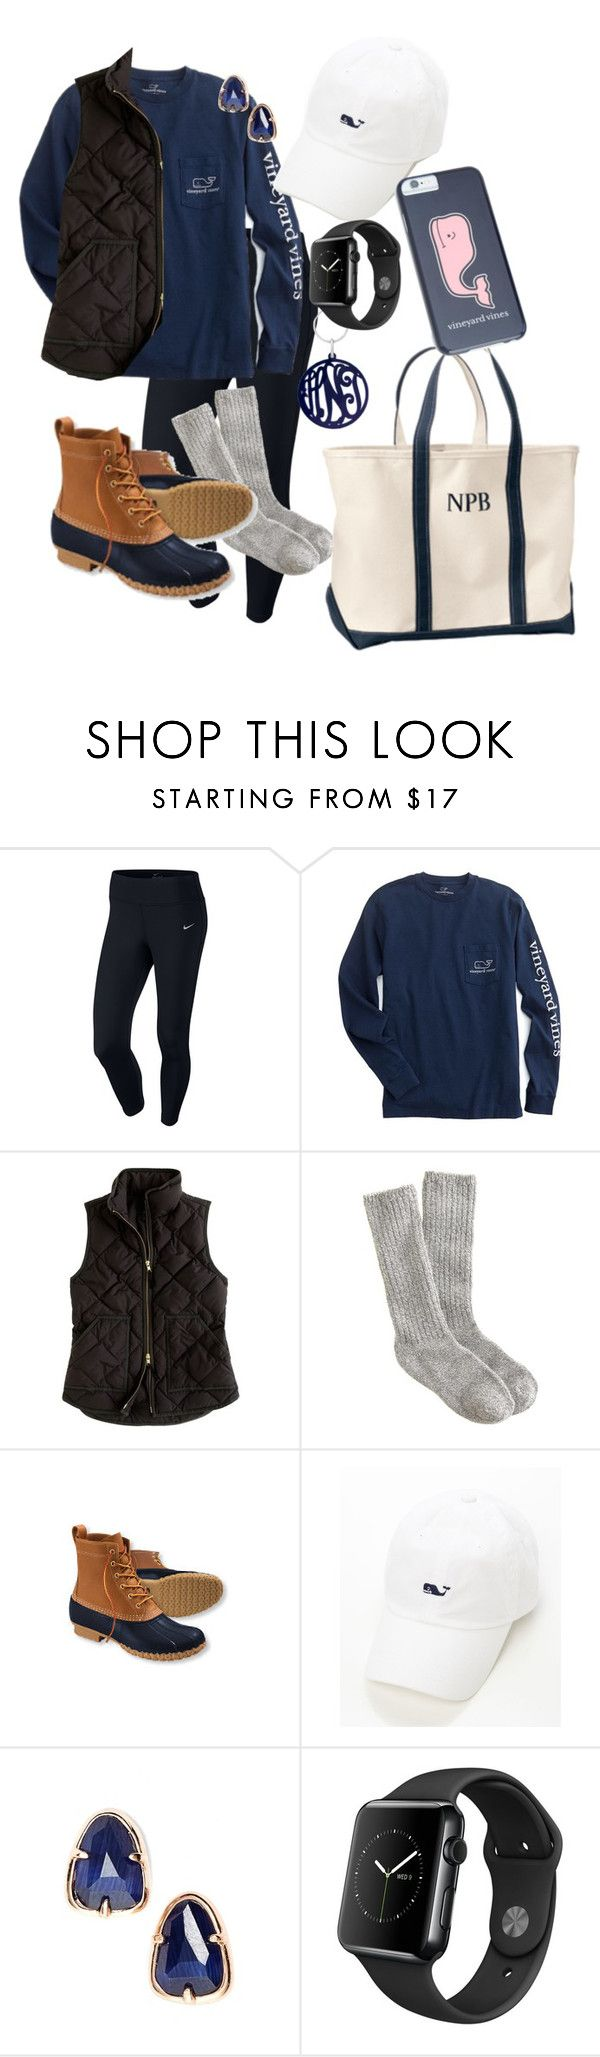 Untitled #55 by colleen-alexandra ❤ liked on Polyvore featuring NIKE, J.Crew, L.L.Bean and Kendra Scott